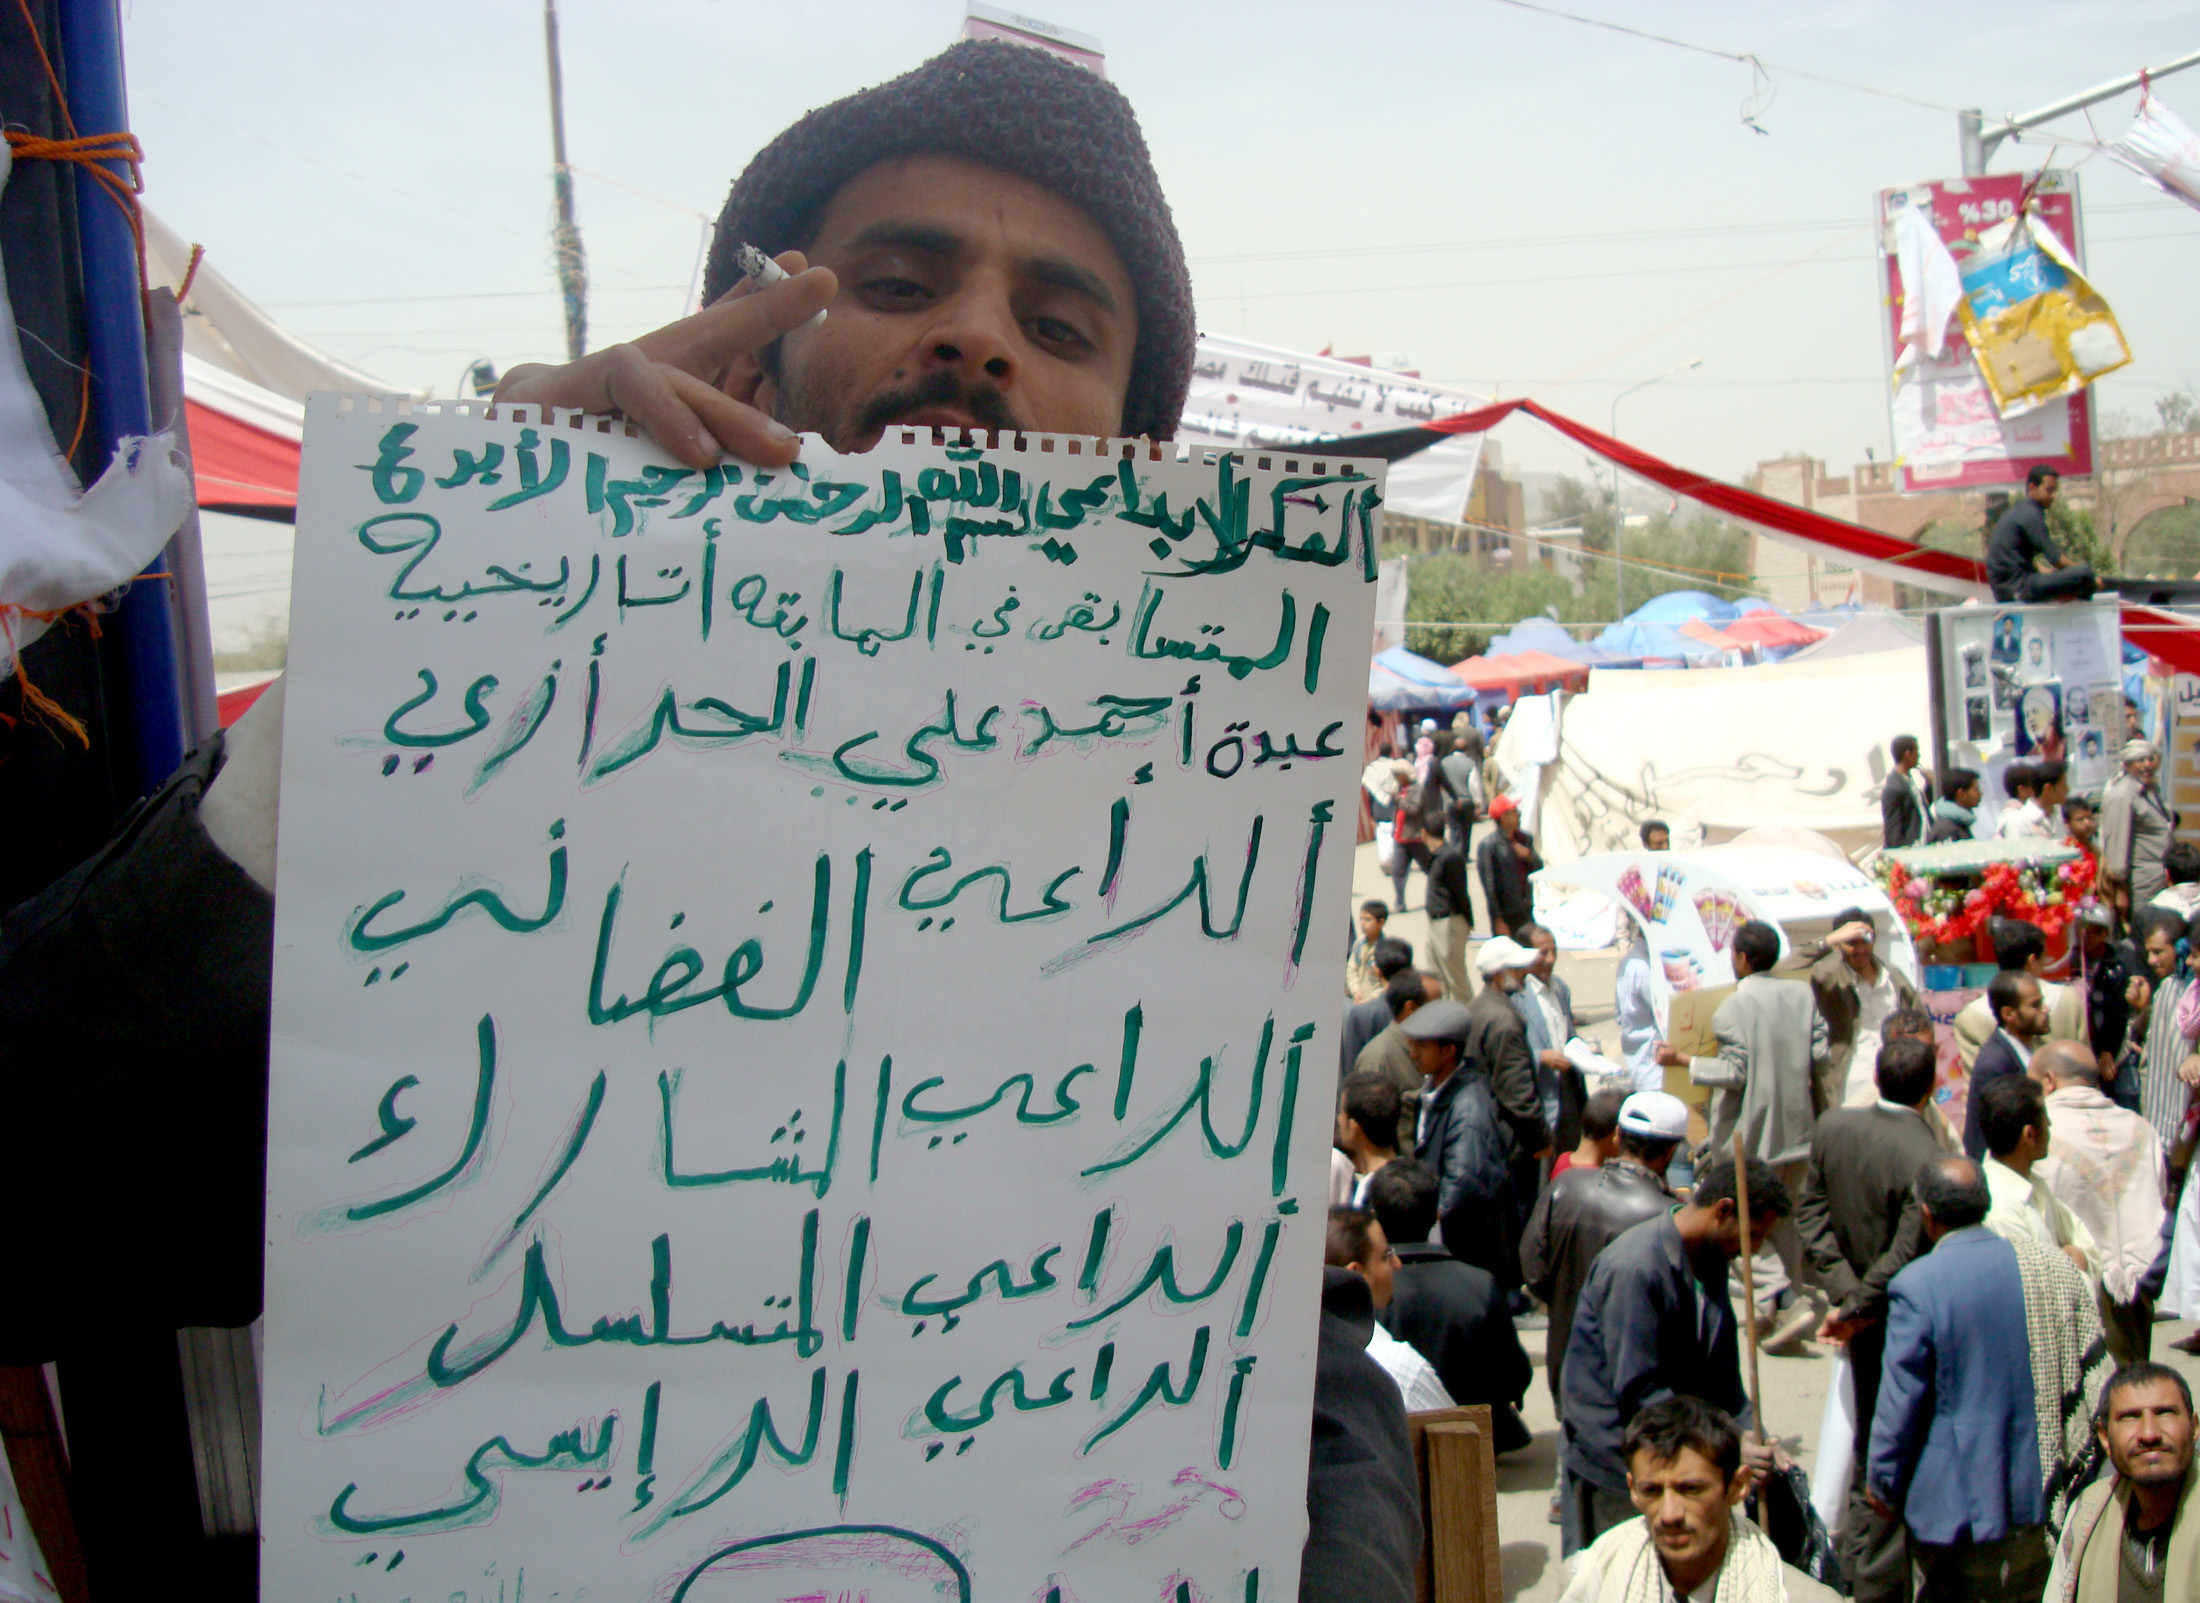 Protesters in Sanaa express their rejection of GCC-proposed initiaitve